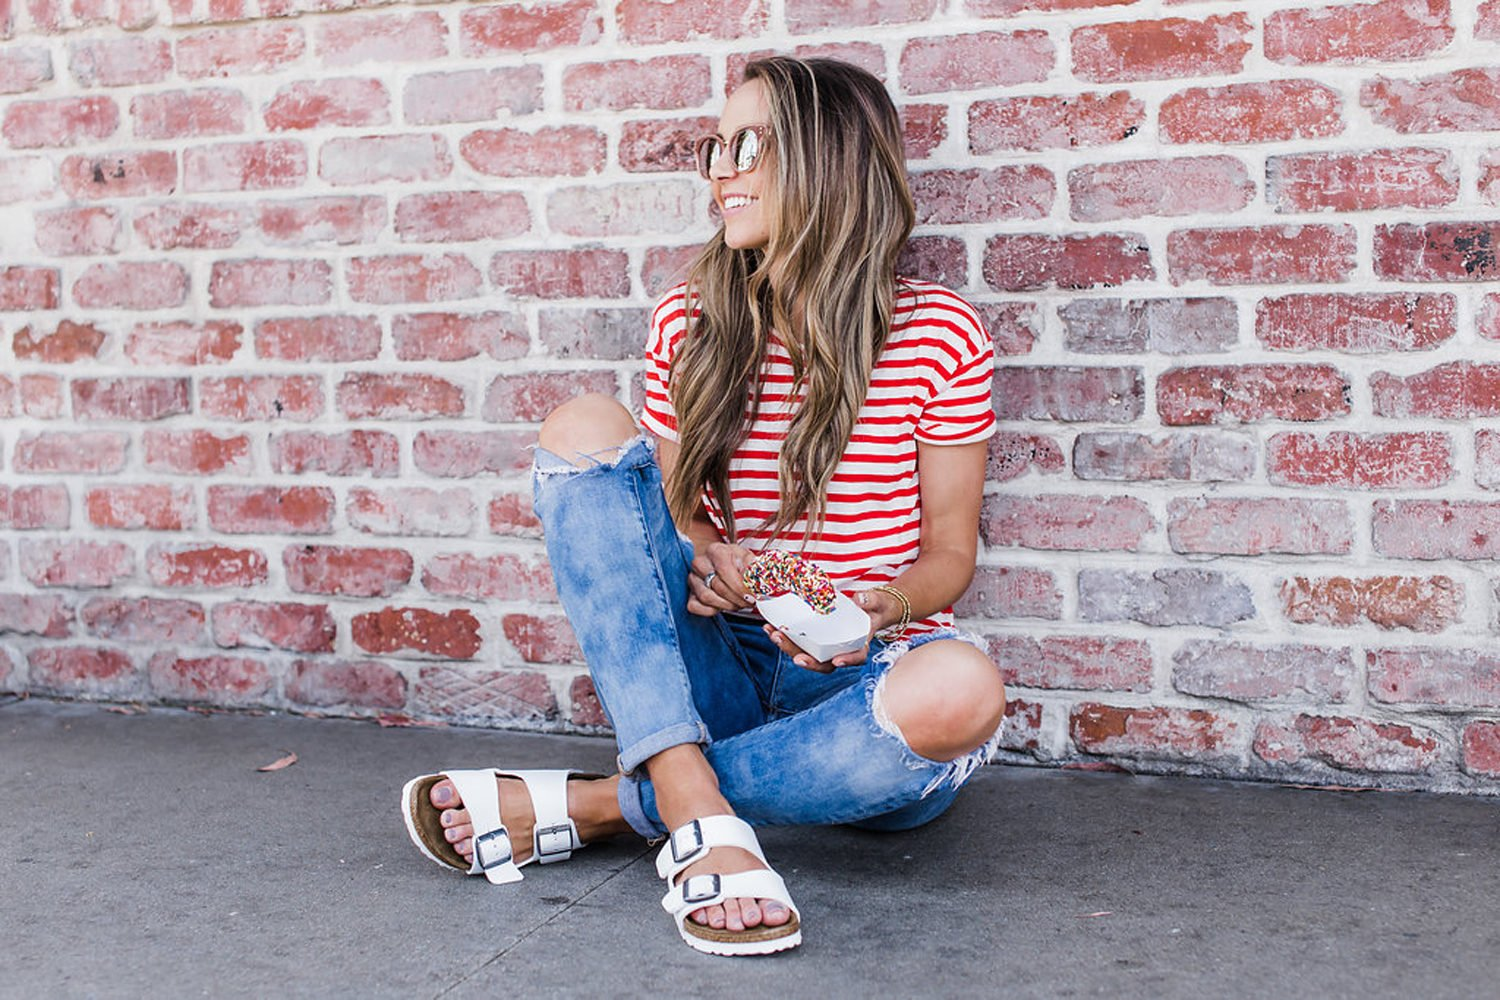 Merrick's Art | Red Striped Top and White Sandals